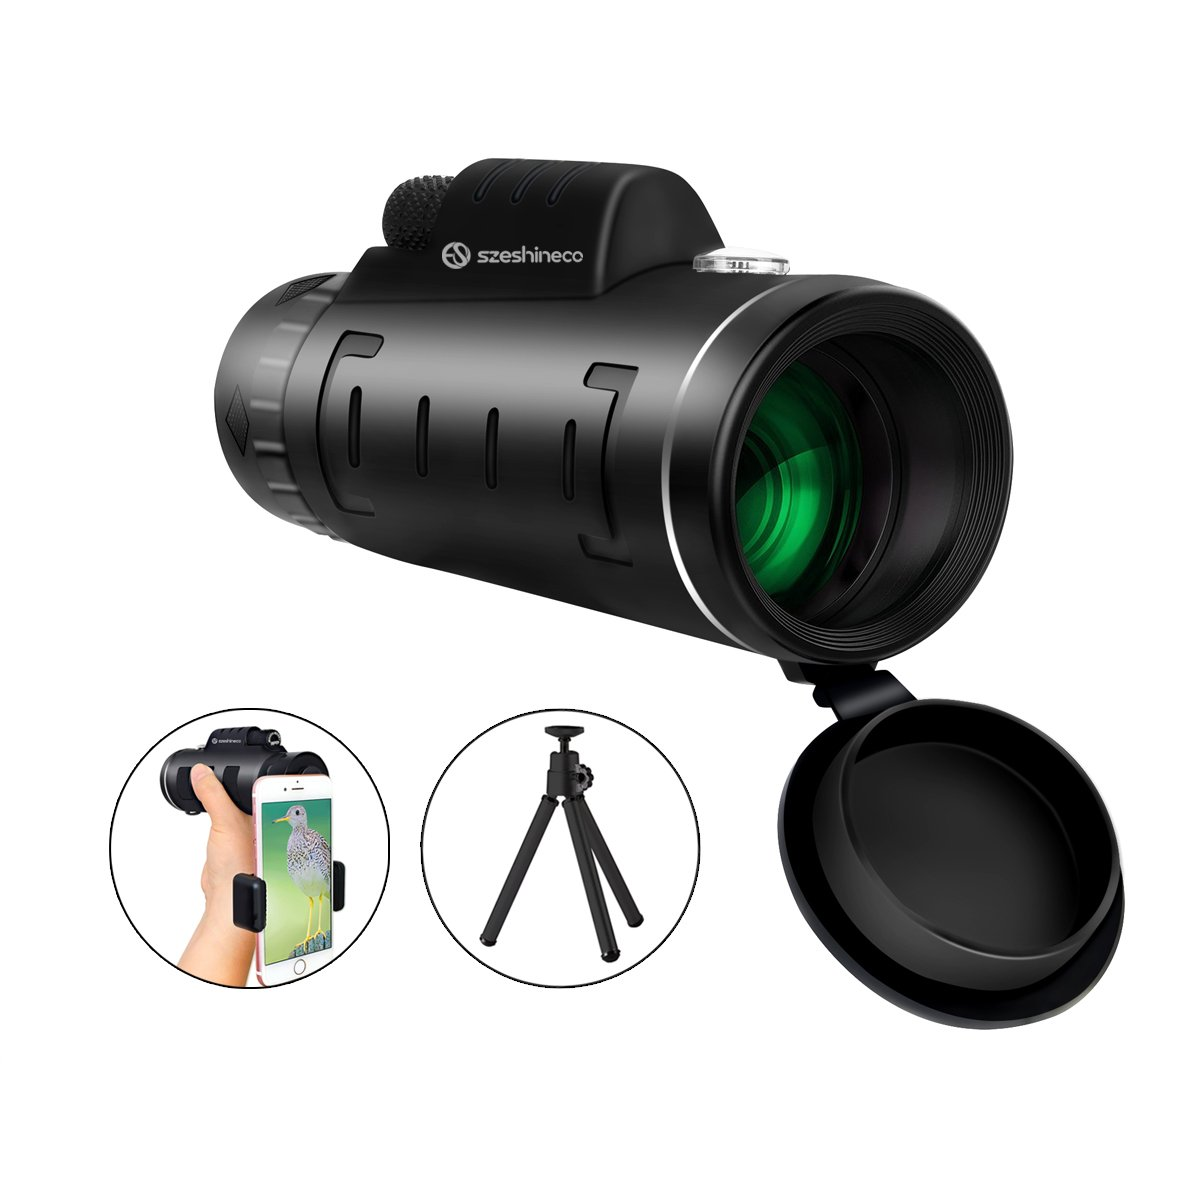 12x50 Monocular Telescopes, Szeshineco Birding Monocular Scopes, BAK4 Prism Waterproof Monoculars for Hunting,Hiking,Camping,Travel,Concert and More, with Steady Tripod and Phone Adapter